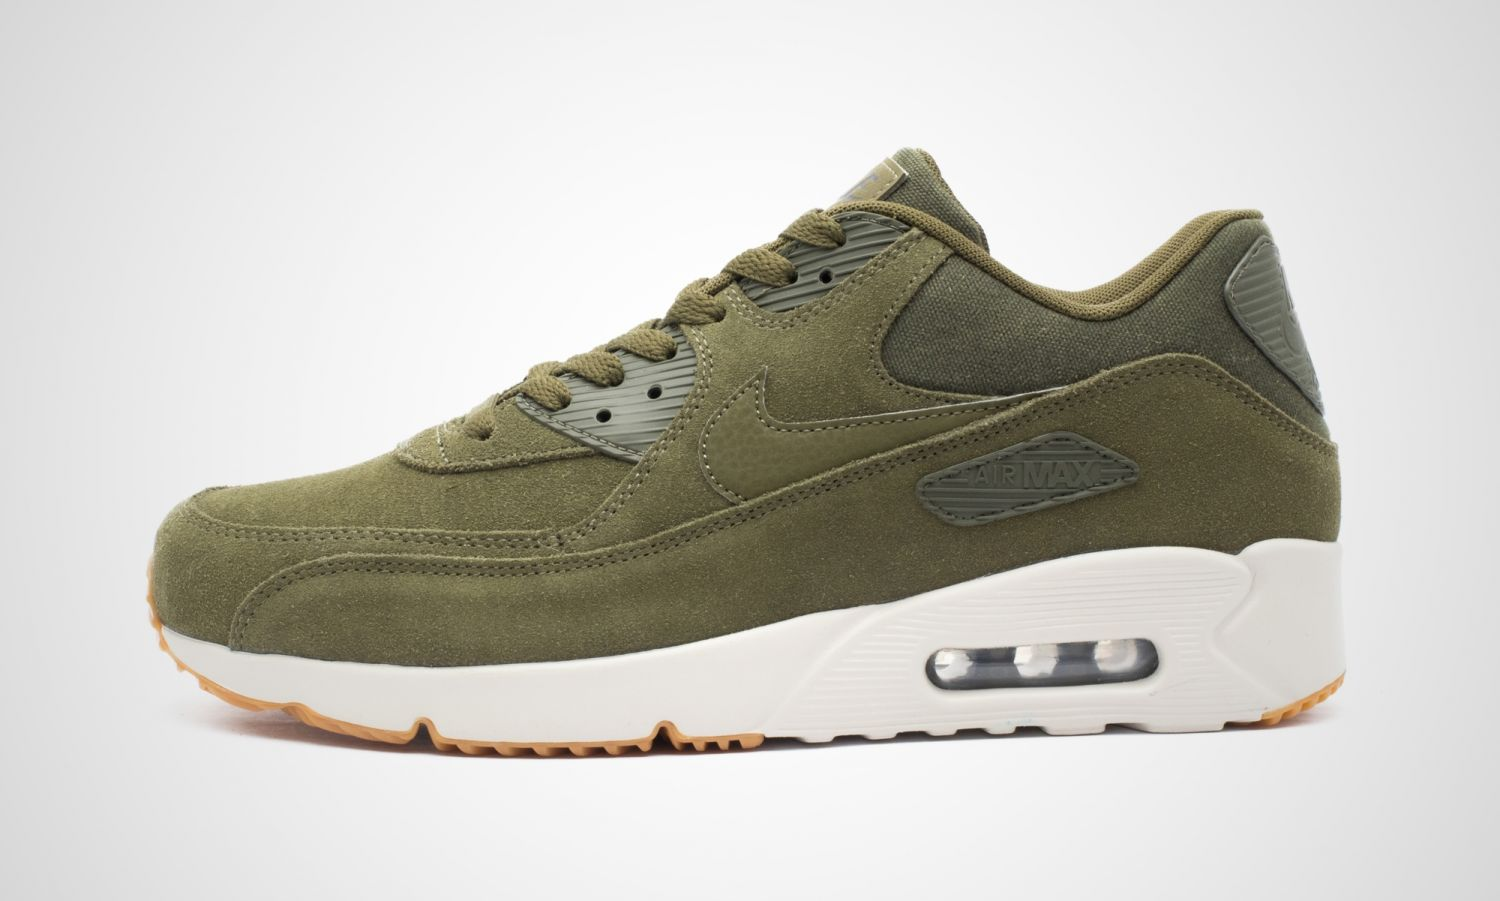 low priced e6140 f5267 nike-air max 90-heren-groen-924447-301-groene-. 31 %. nike air max 90 groen